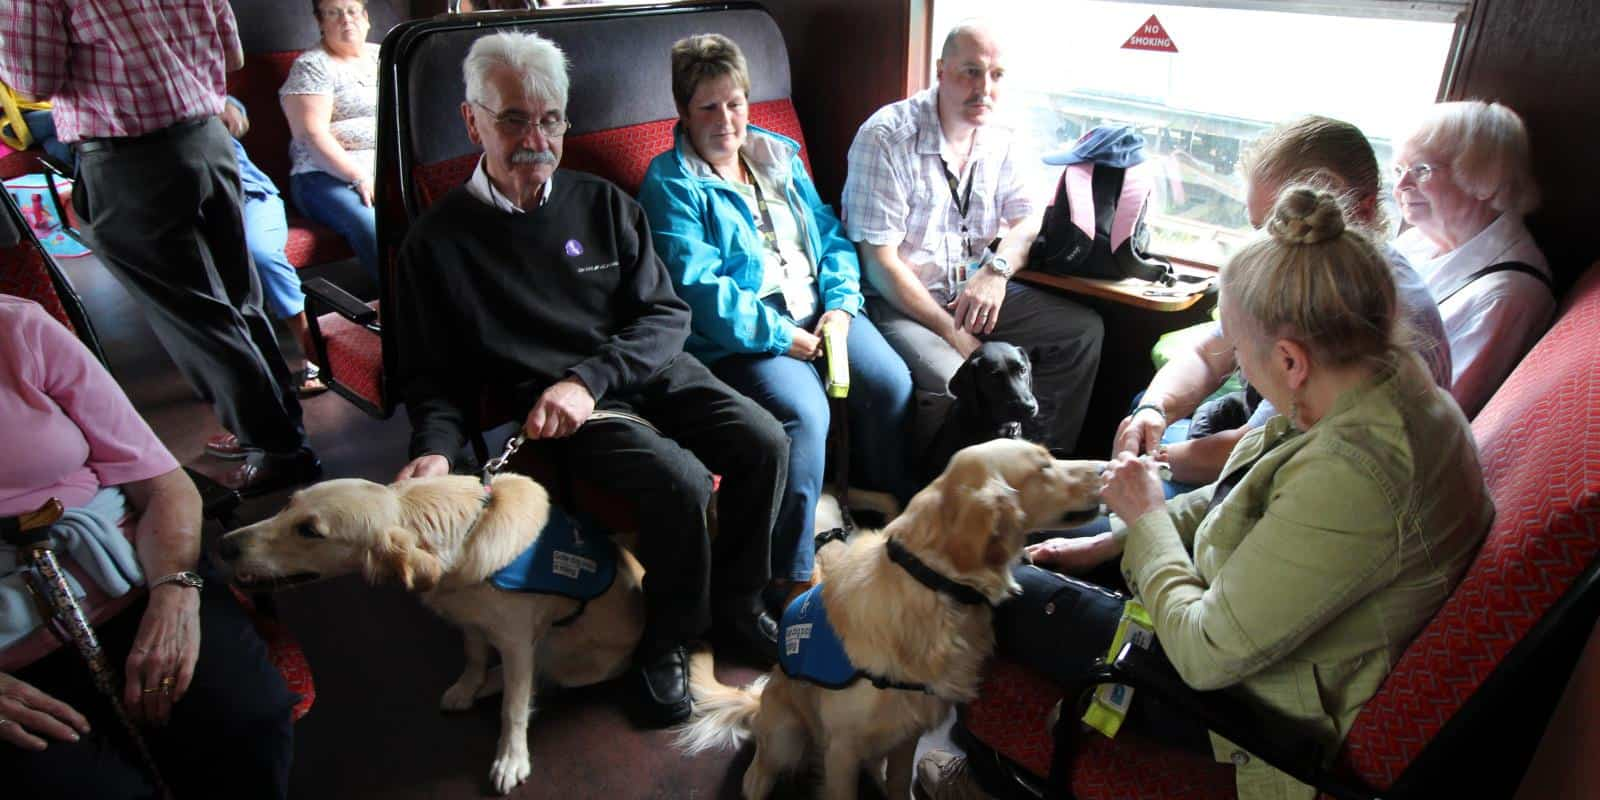 Guide Dogs NI group travelling on one of our trains. Dogs are very welcome!